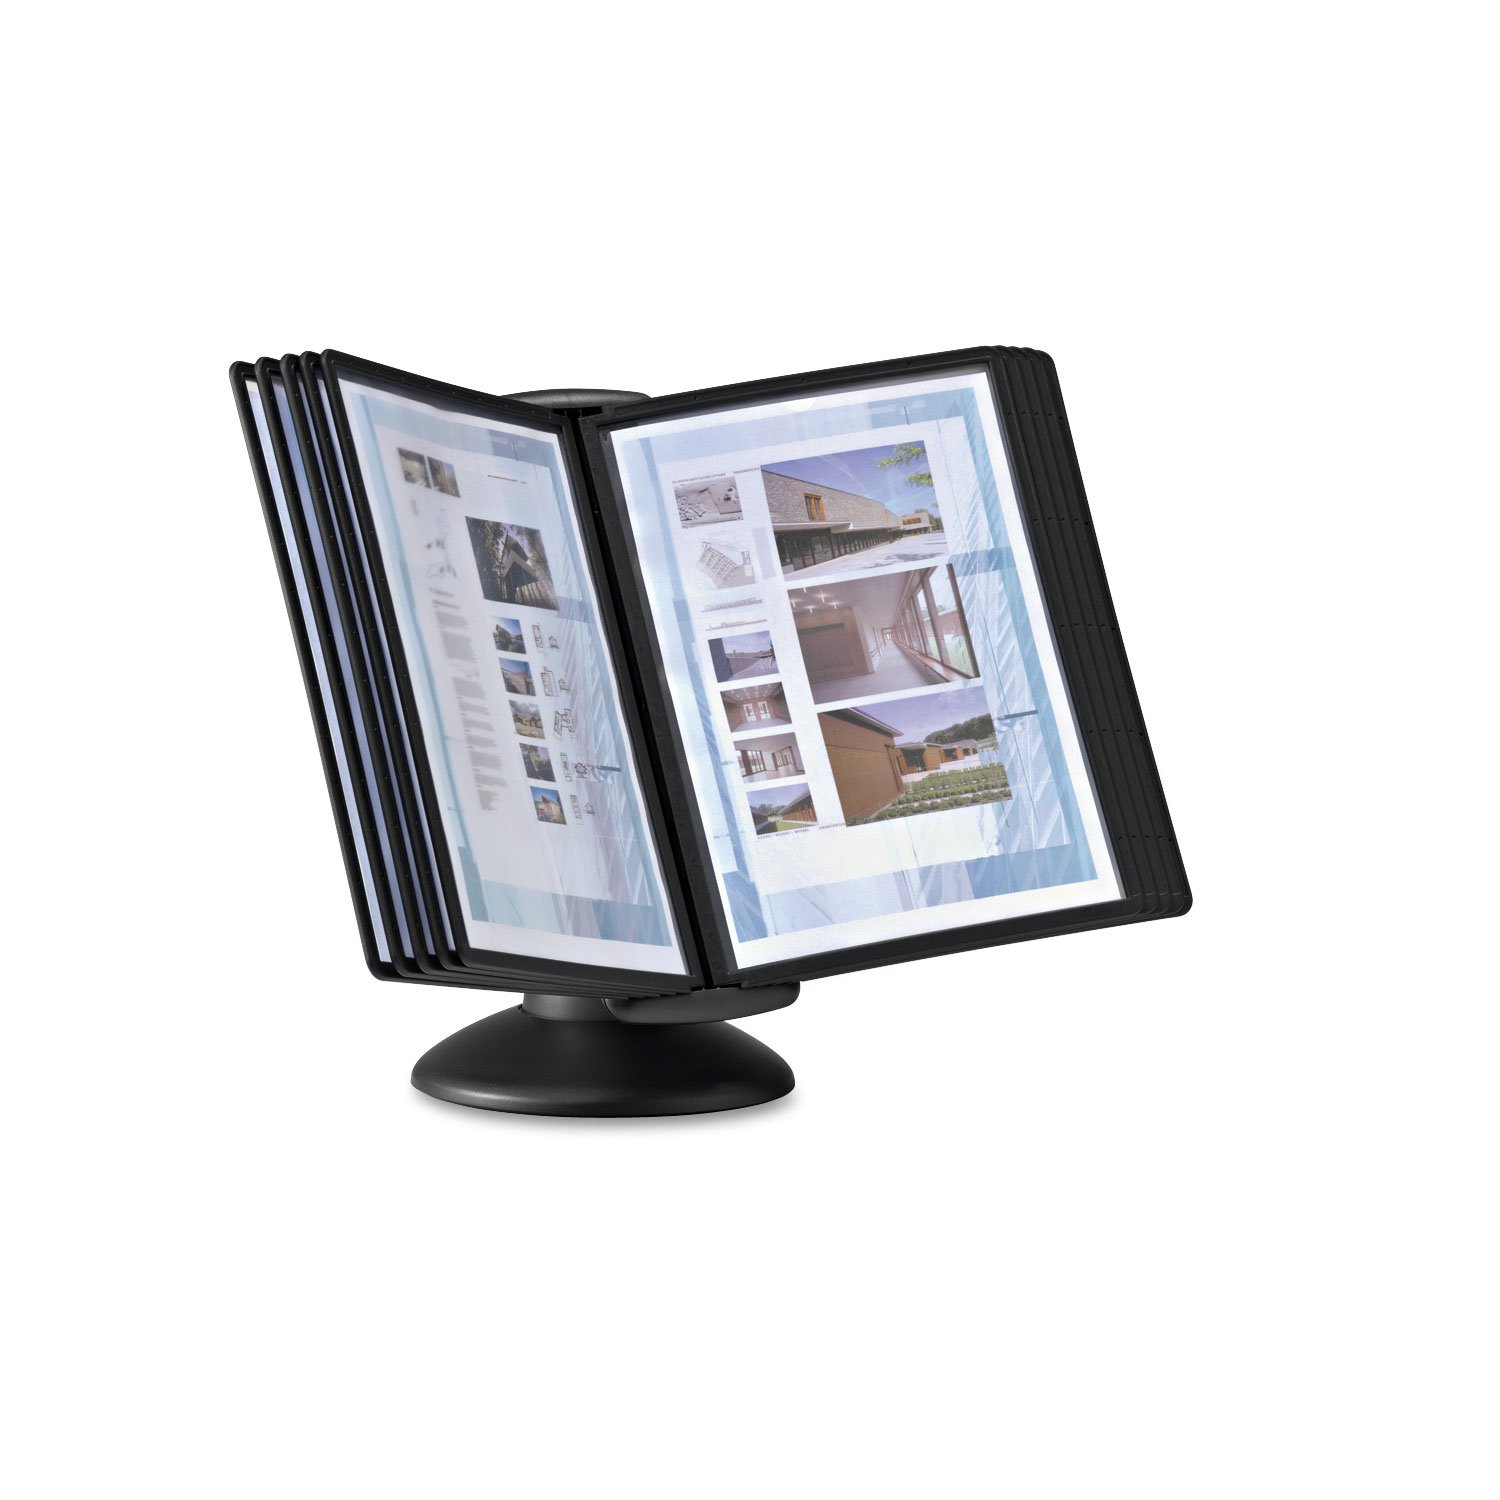 Durable 553901 Sherpa Motion Desk Reference System, 10 Panels, Black by Durable